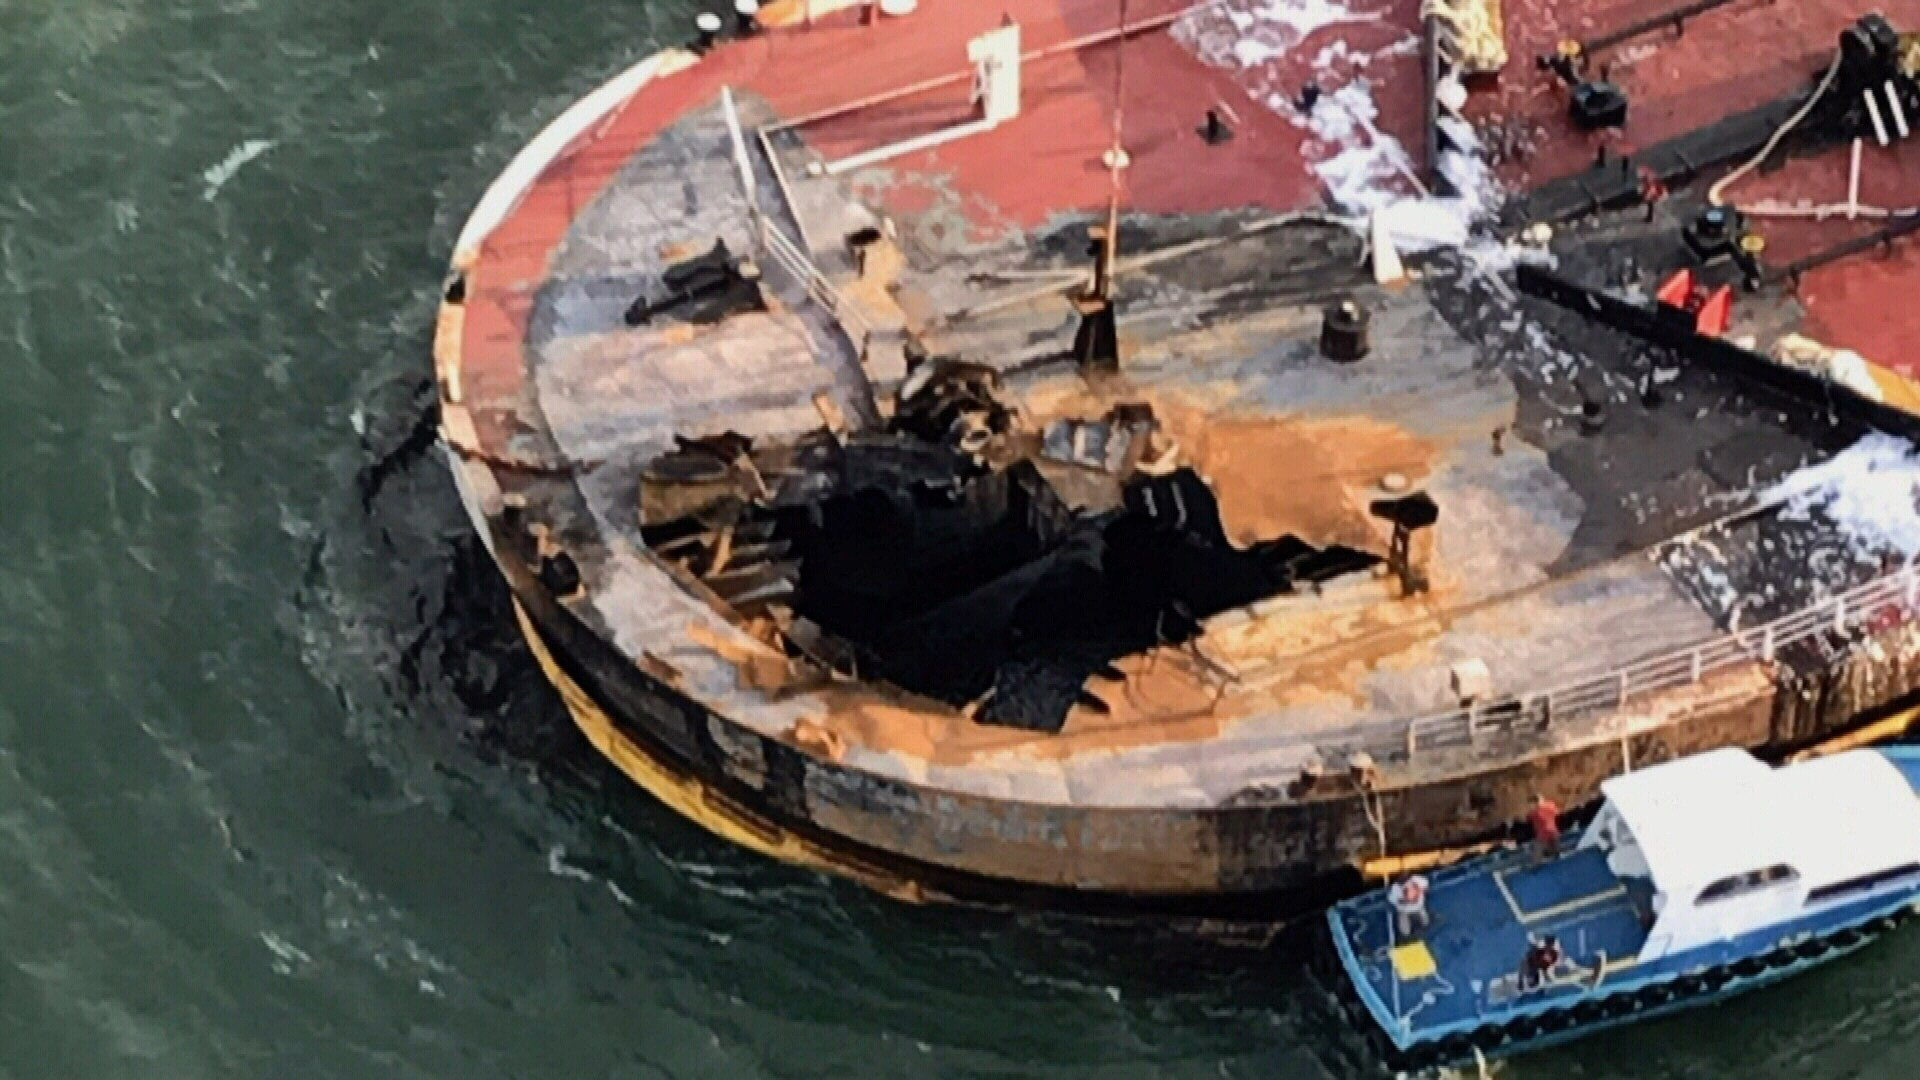 The cause of the explosion remains under investigation by the Coast Guard and the National Transportation Safety Board.